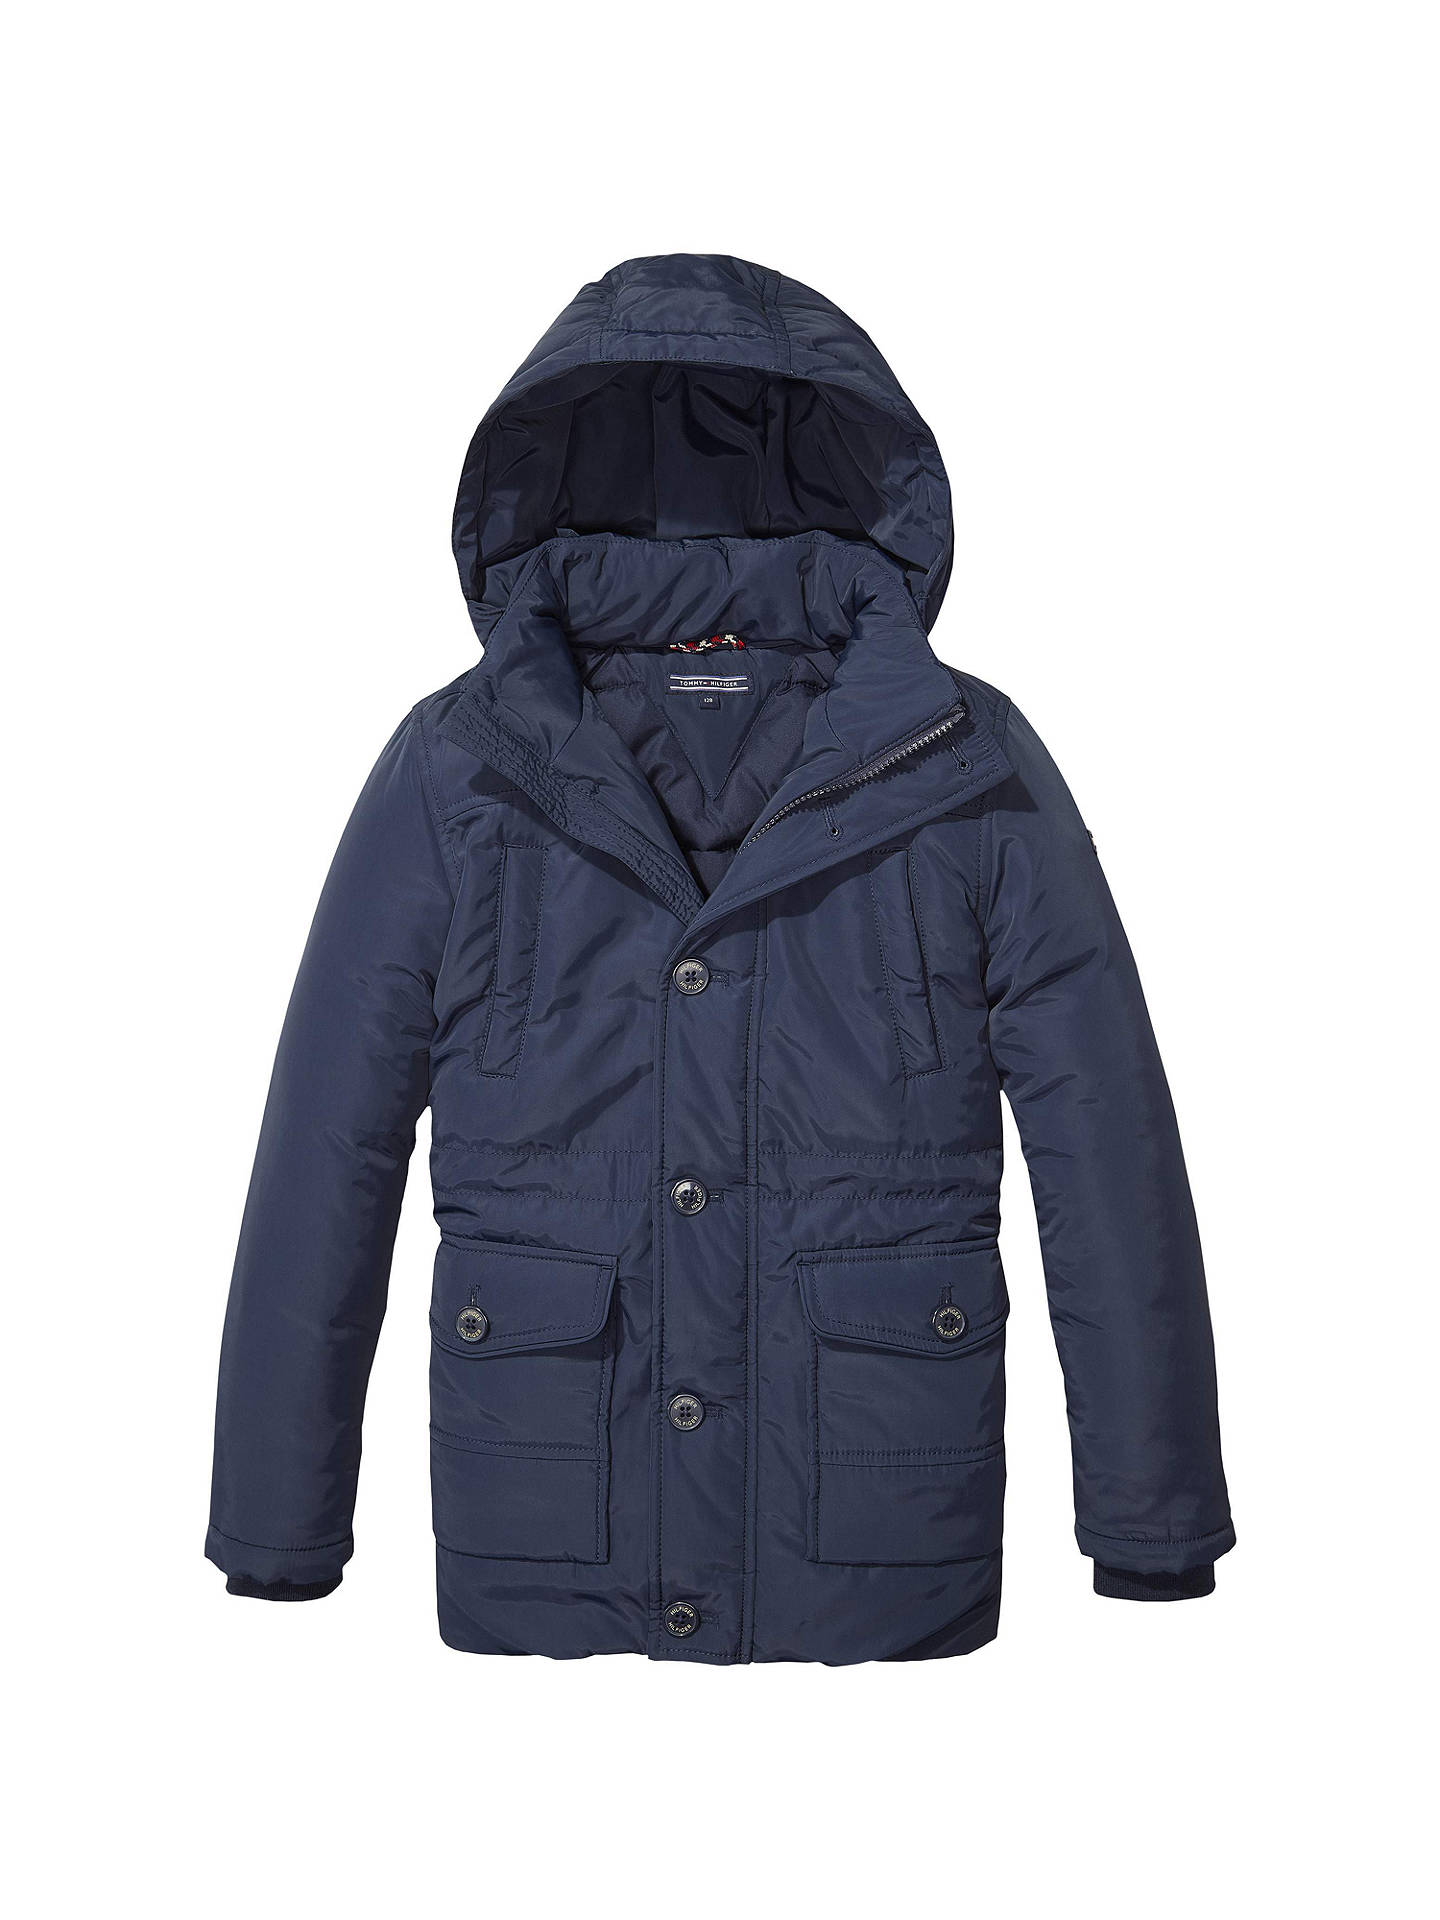 a84d1d20c1 Tommy Hilfiger Boys' Padded Parka Jacket, Navy at John Lewis & Partners